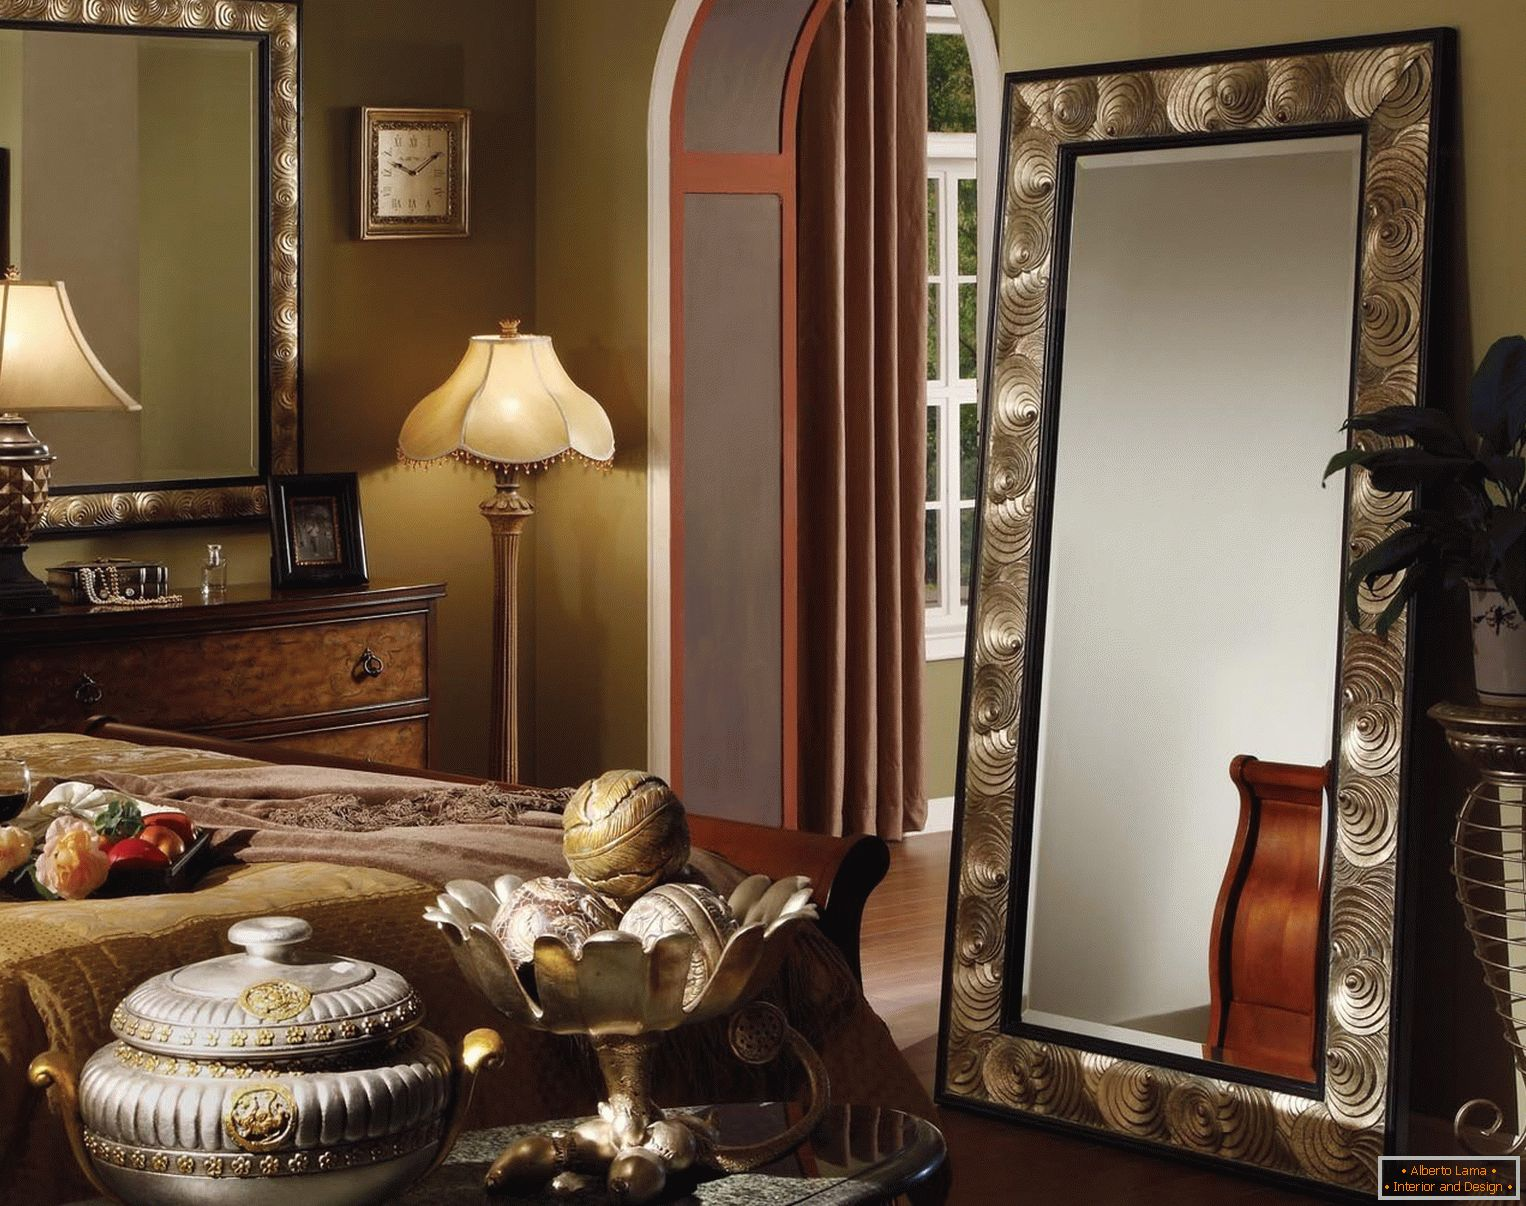 Chic interior with mirrors